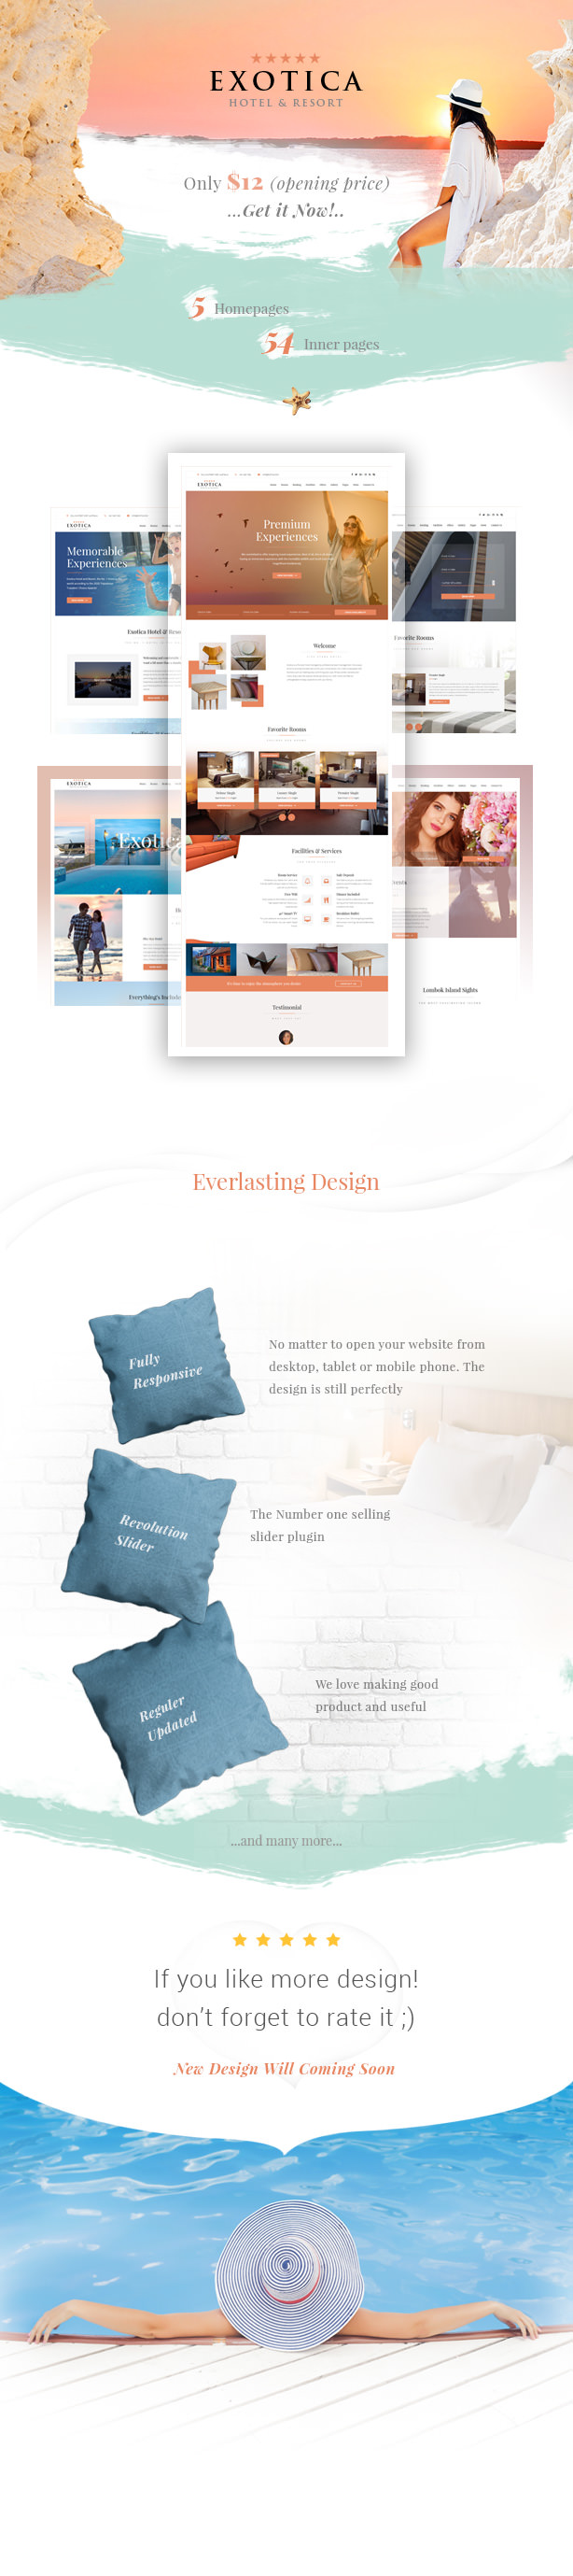 booking, clean, event, hotel, interactive, isotop, modern, parallax, reservation, resorts, simple, vacation